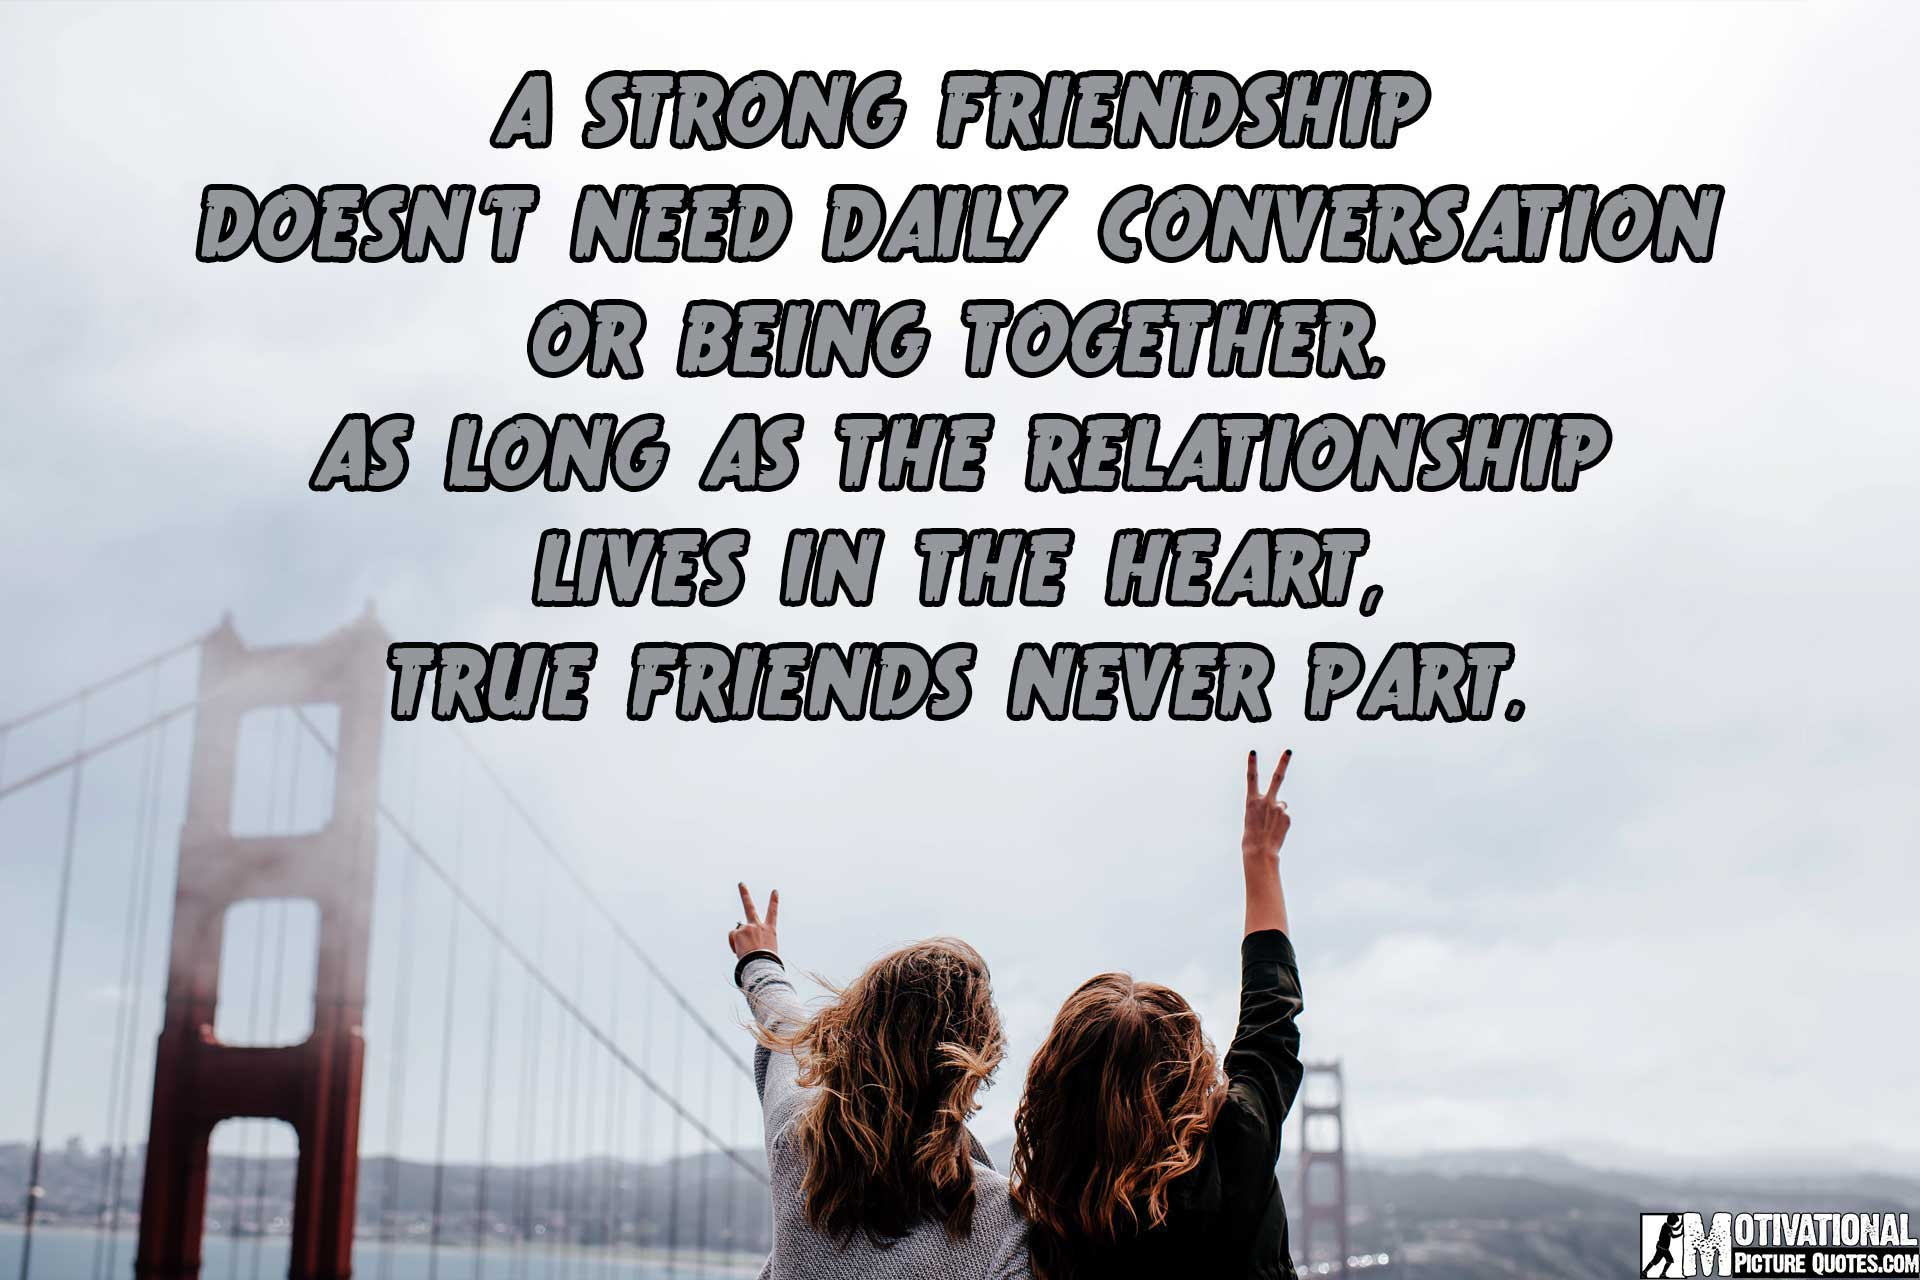 Quotes And Images About Friendship Alluring 25 Inspirational Friendship Quotes Images  Free Download